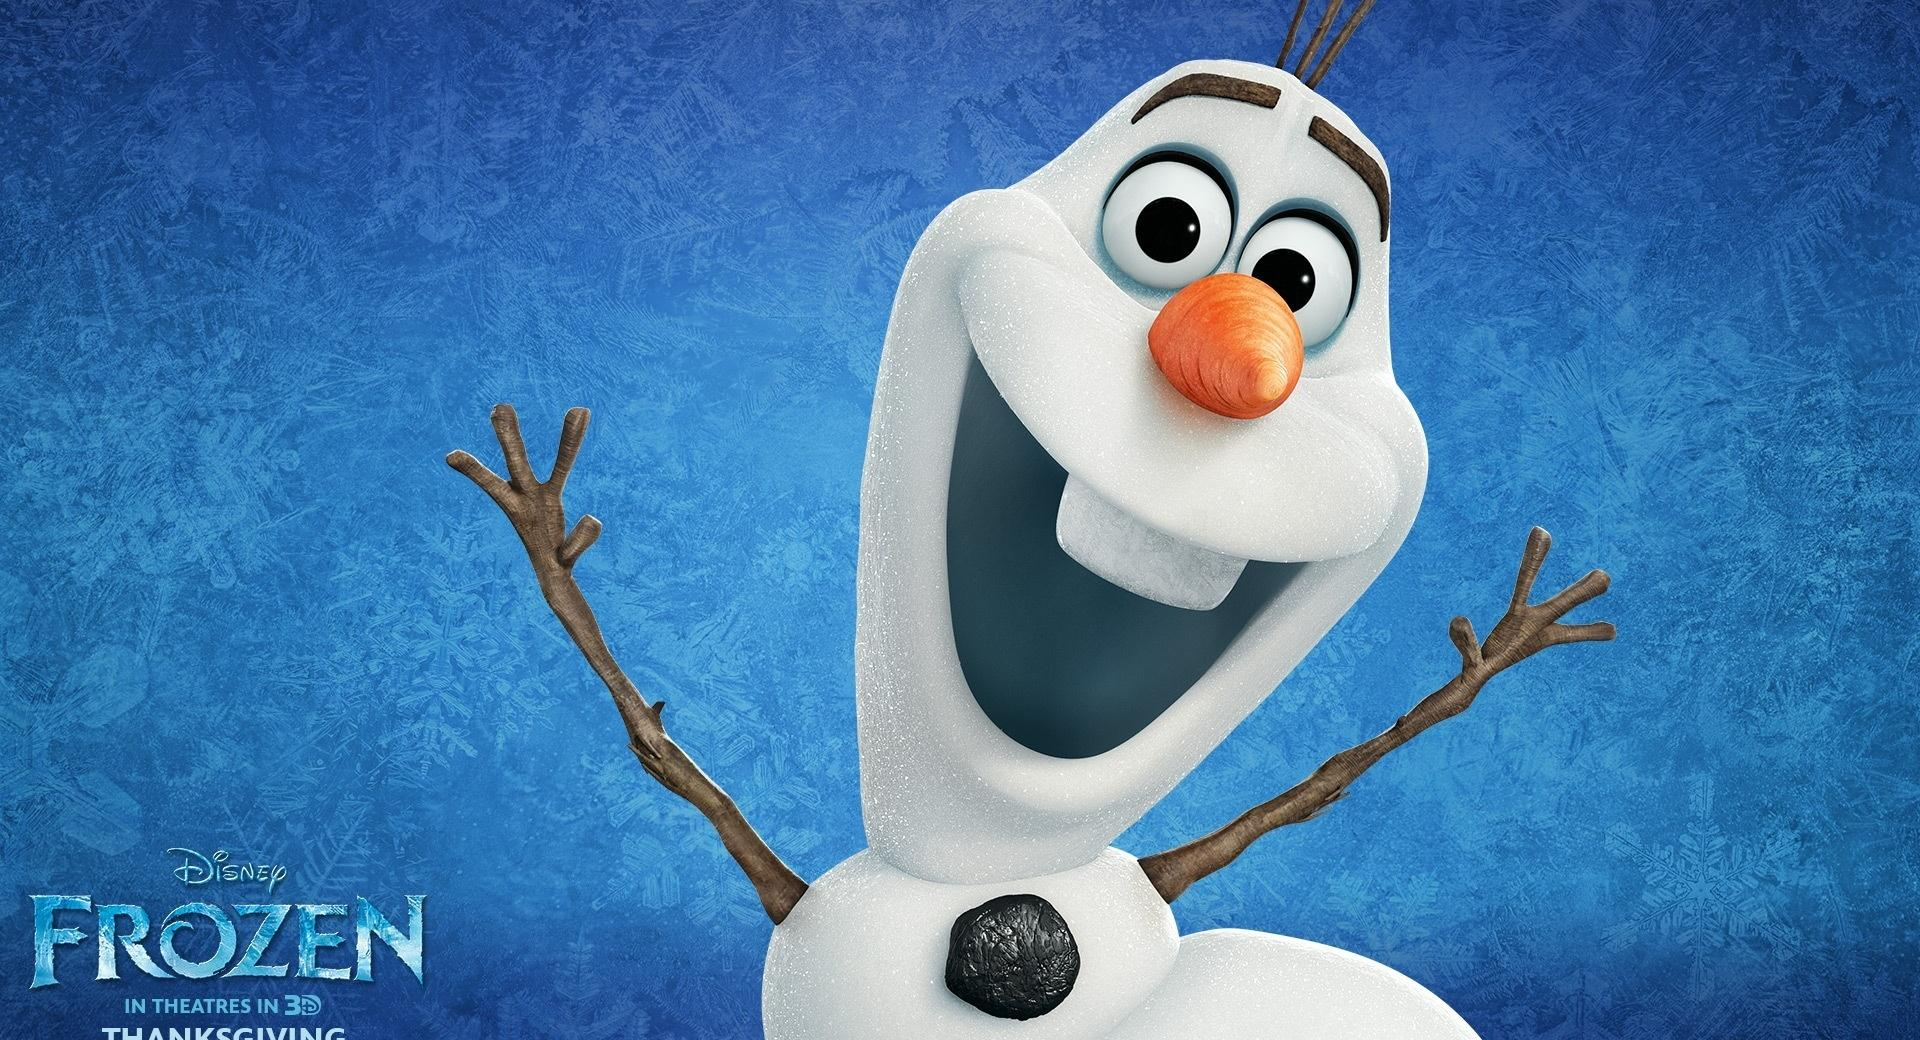 Frozen Movie Snowman wallpapers HD quality